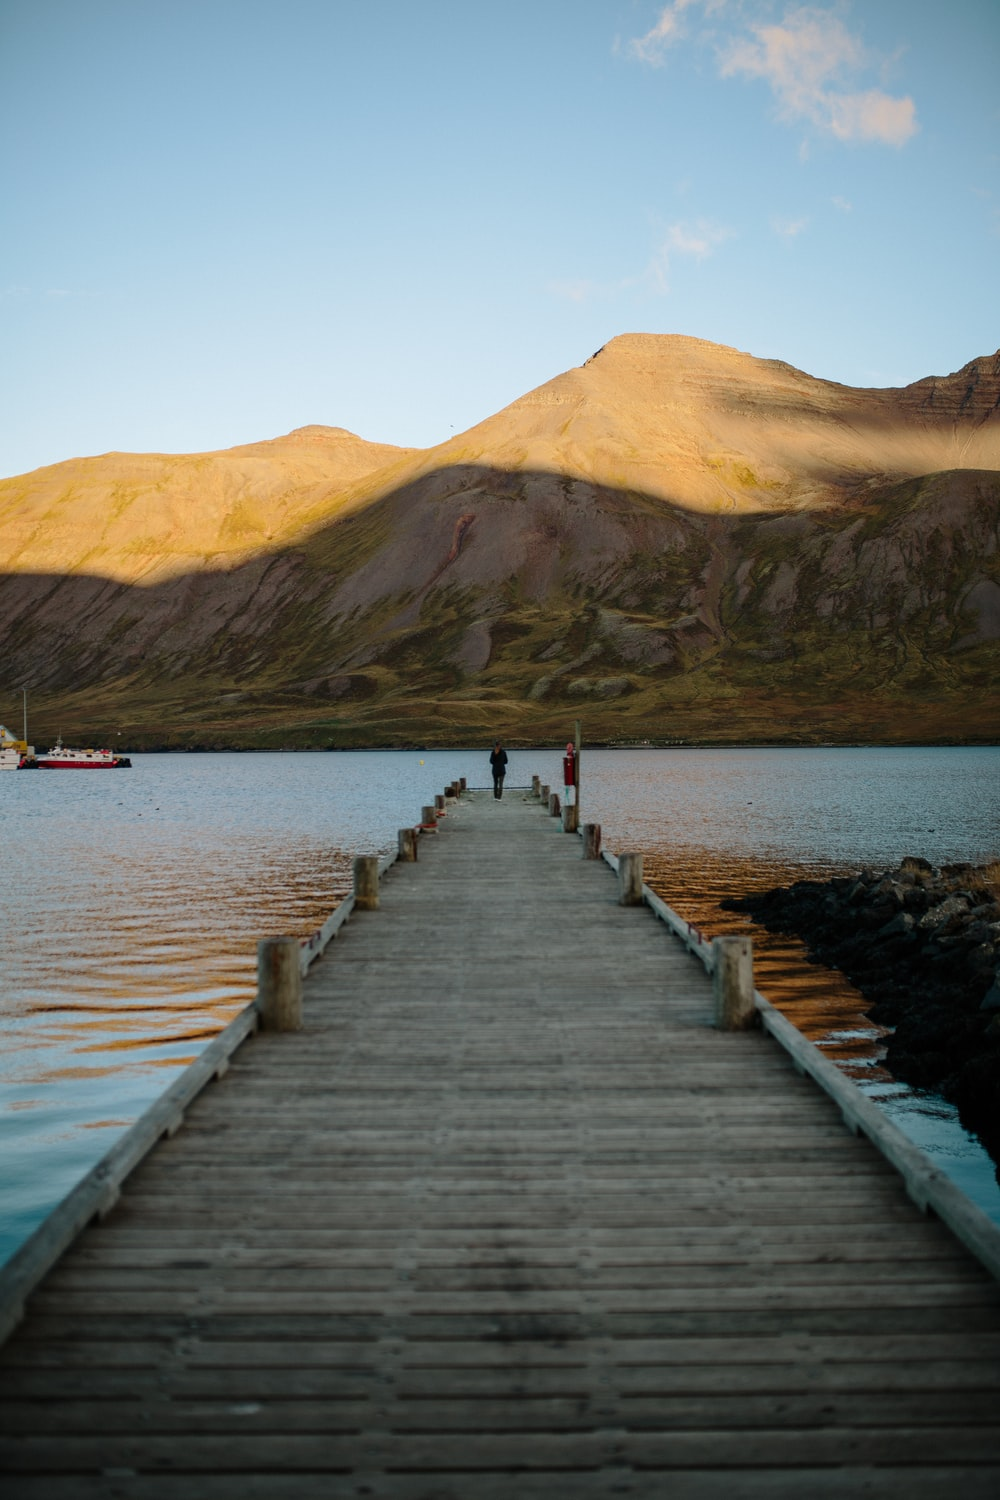 person standing at edge of dock